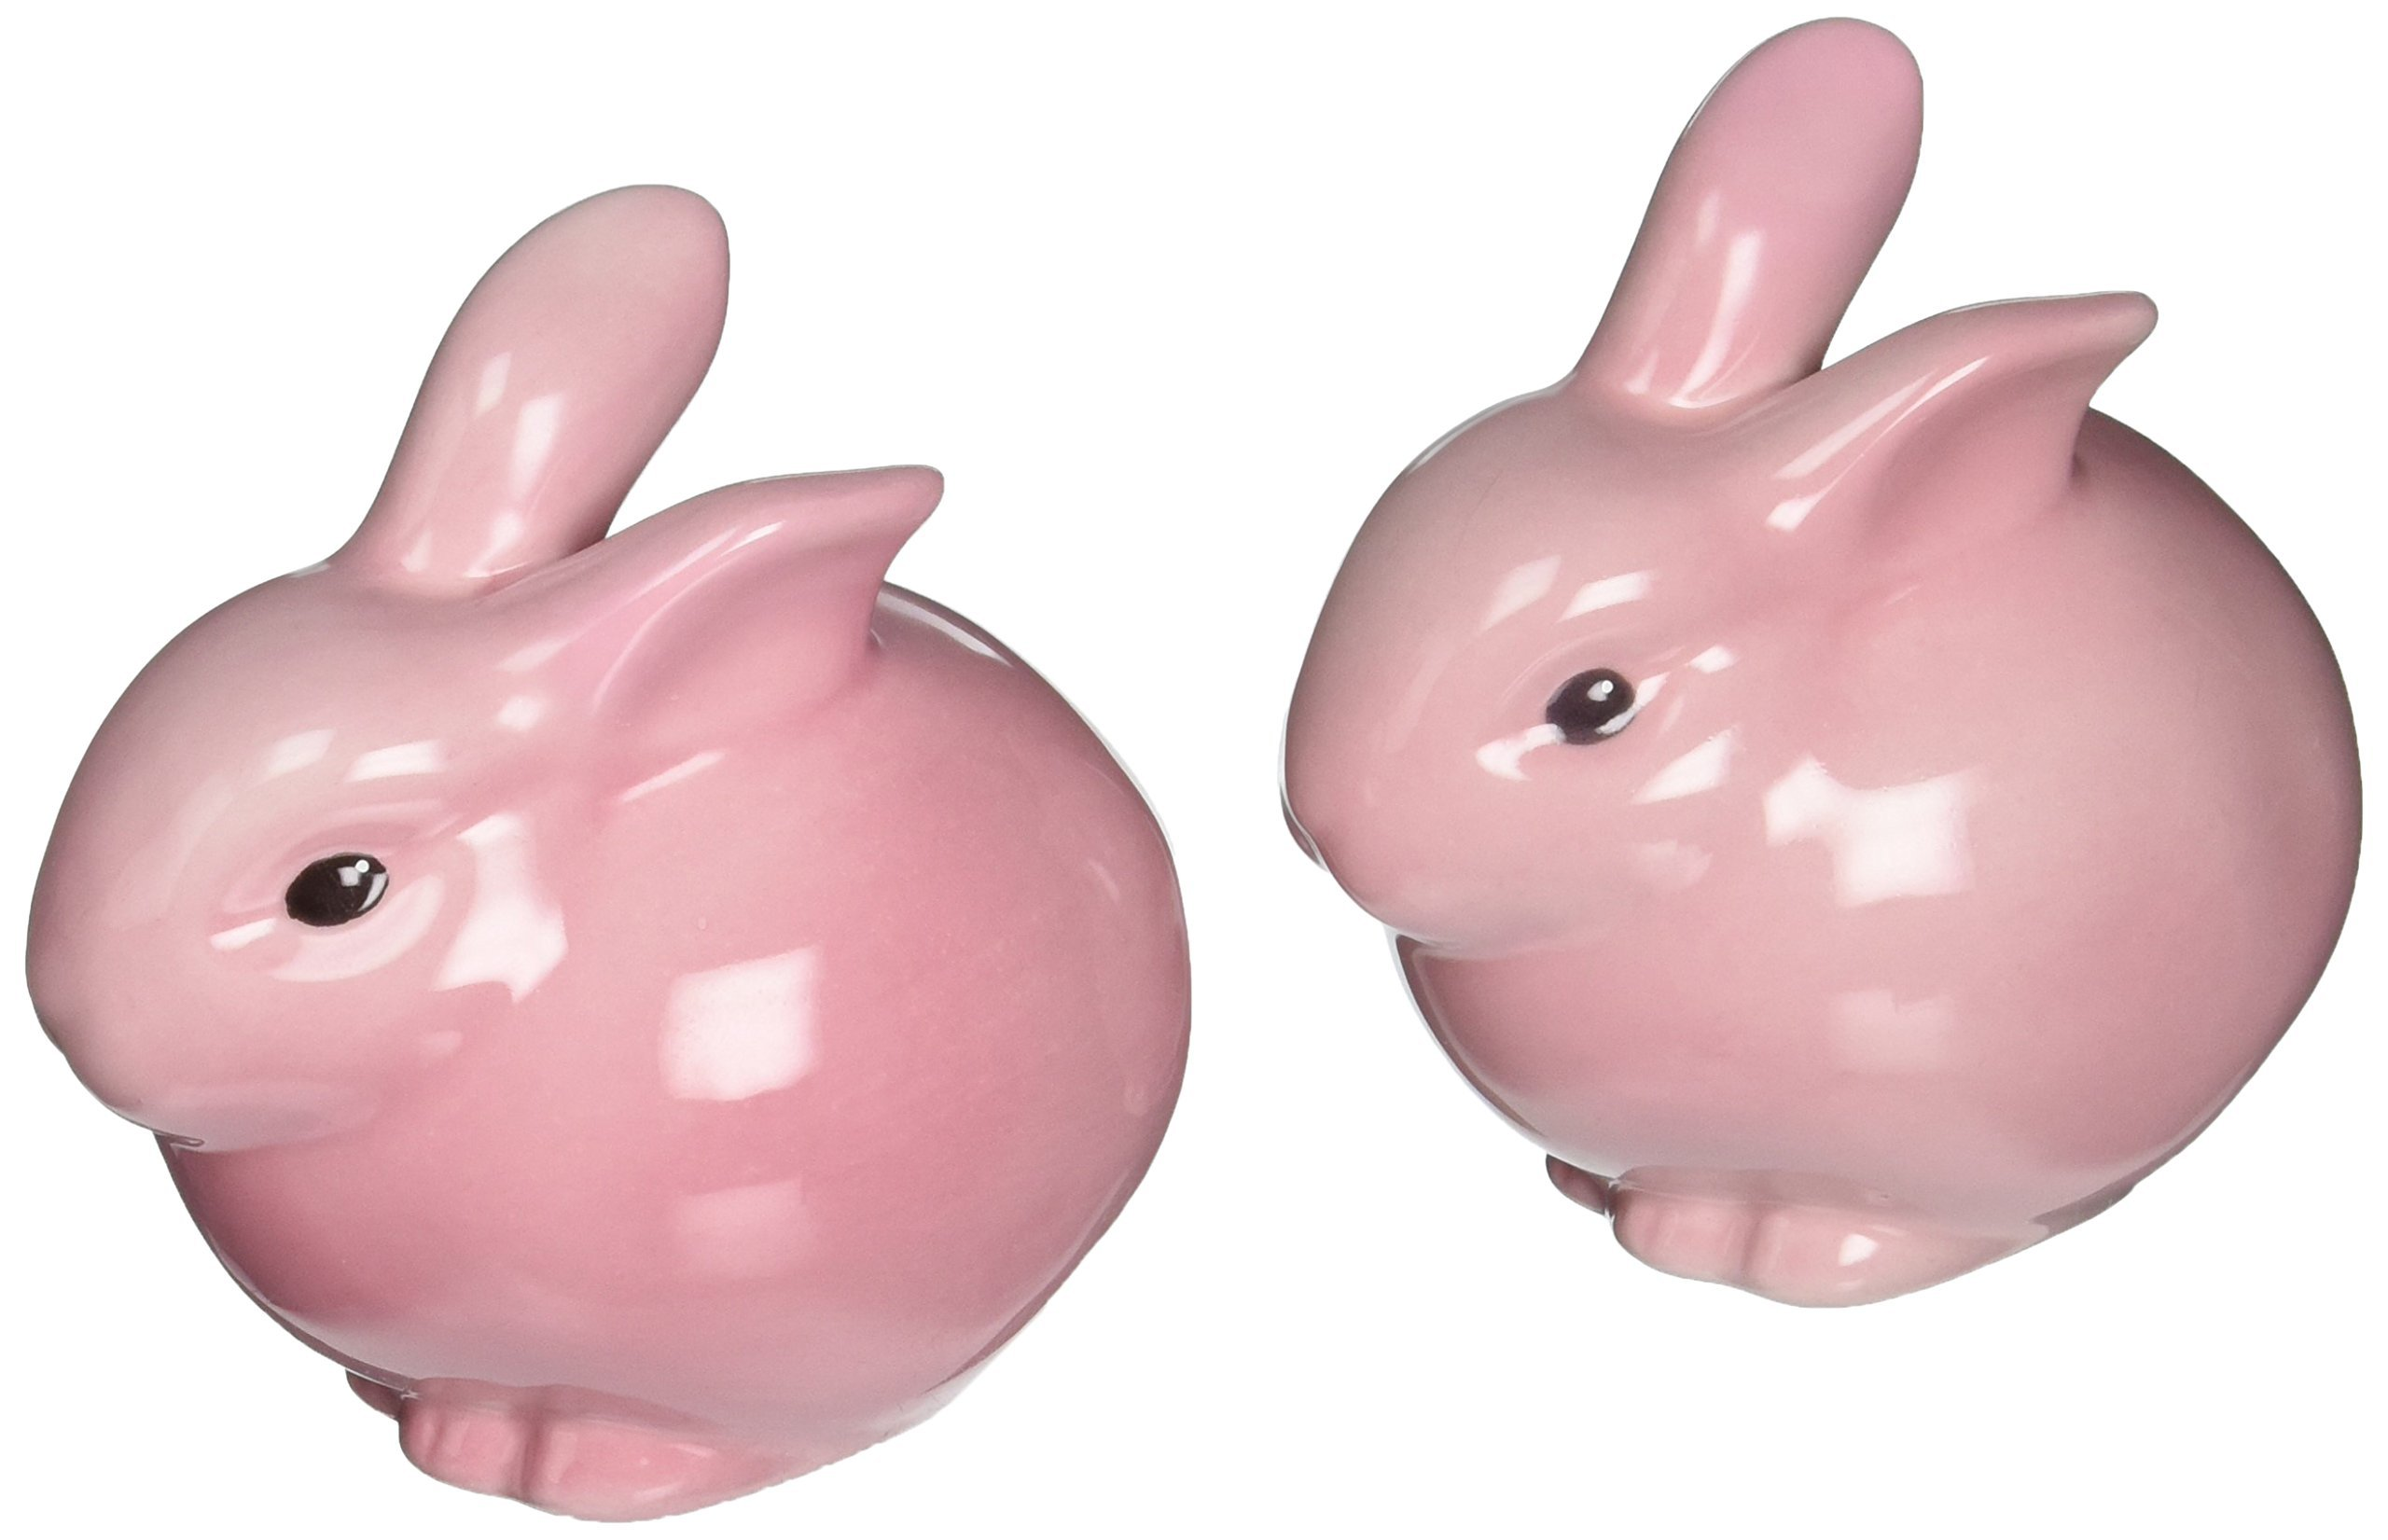 Cosmos 61107 Gifts Ceramic Pink Bunny Salt and Pepper Set, 3-3/4 Inches High